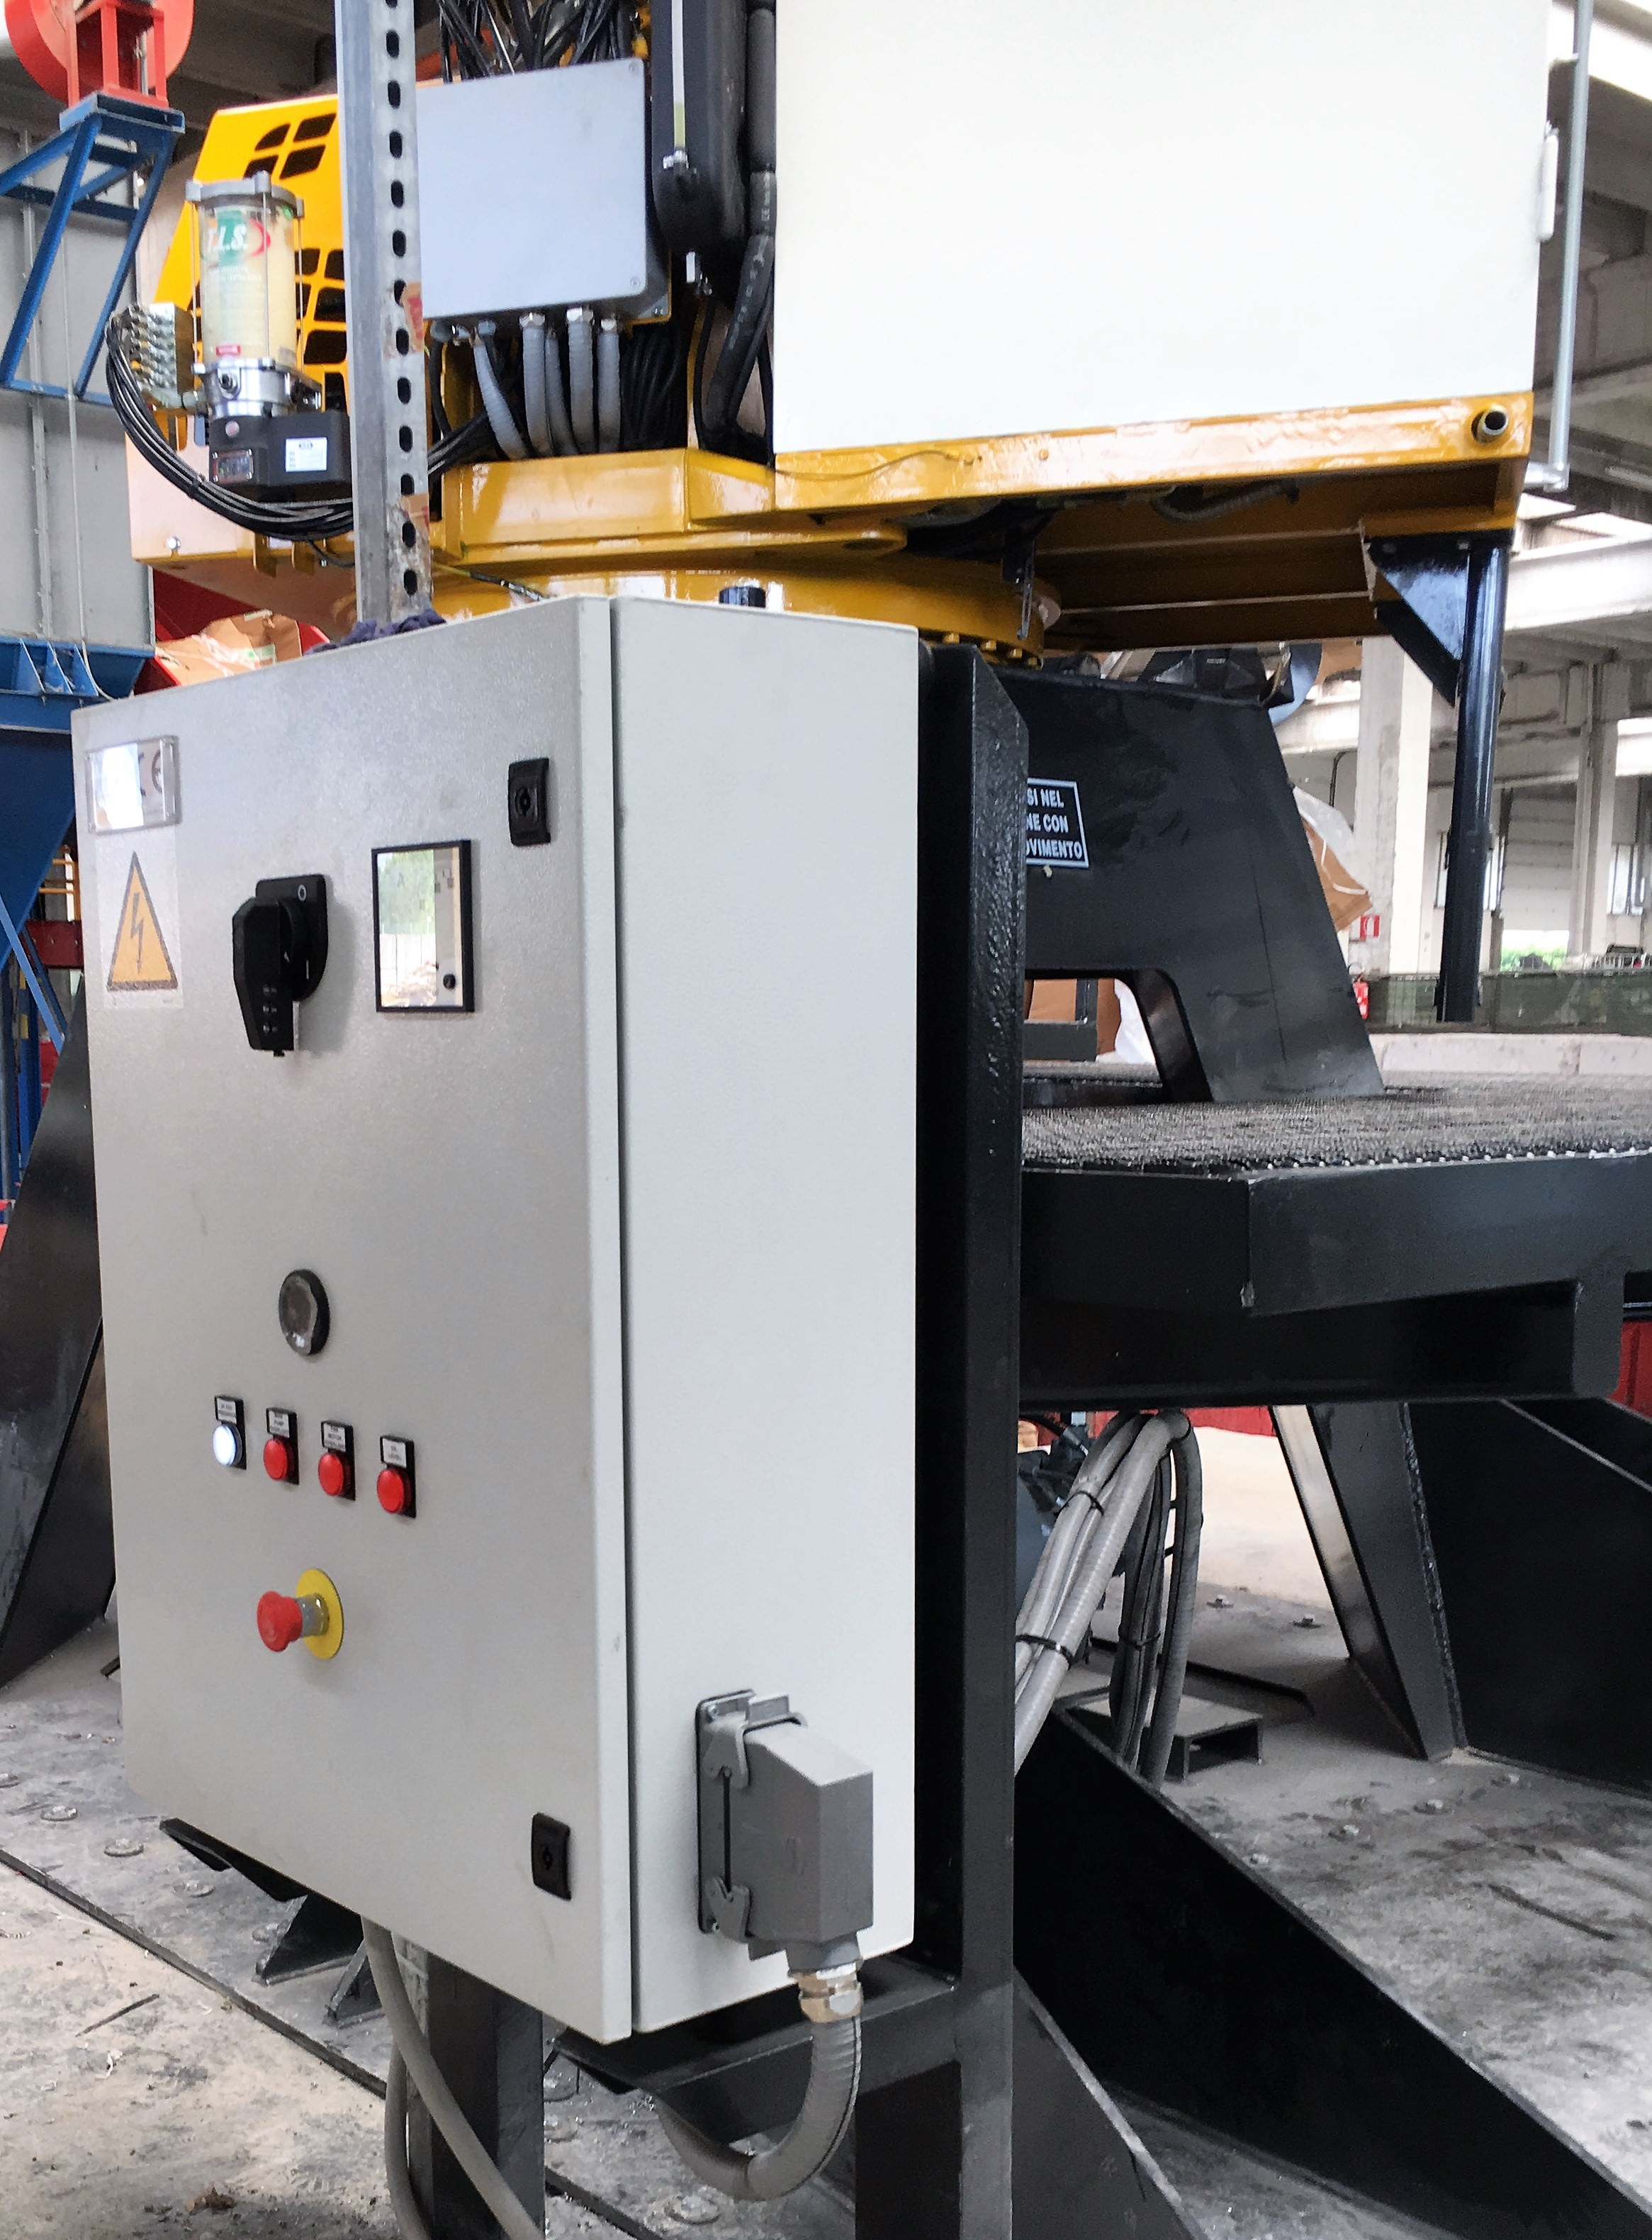 Chargeuse stationnaire GF 75.105/80.105 tabarelli